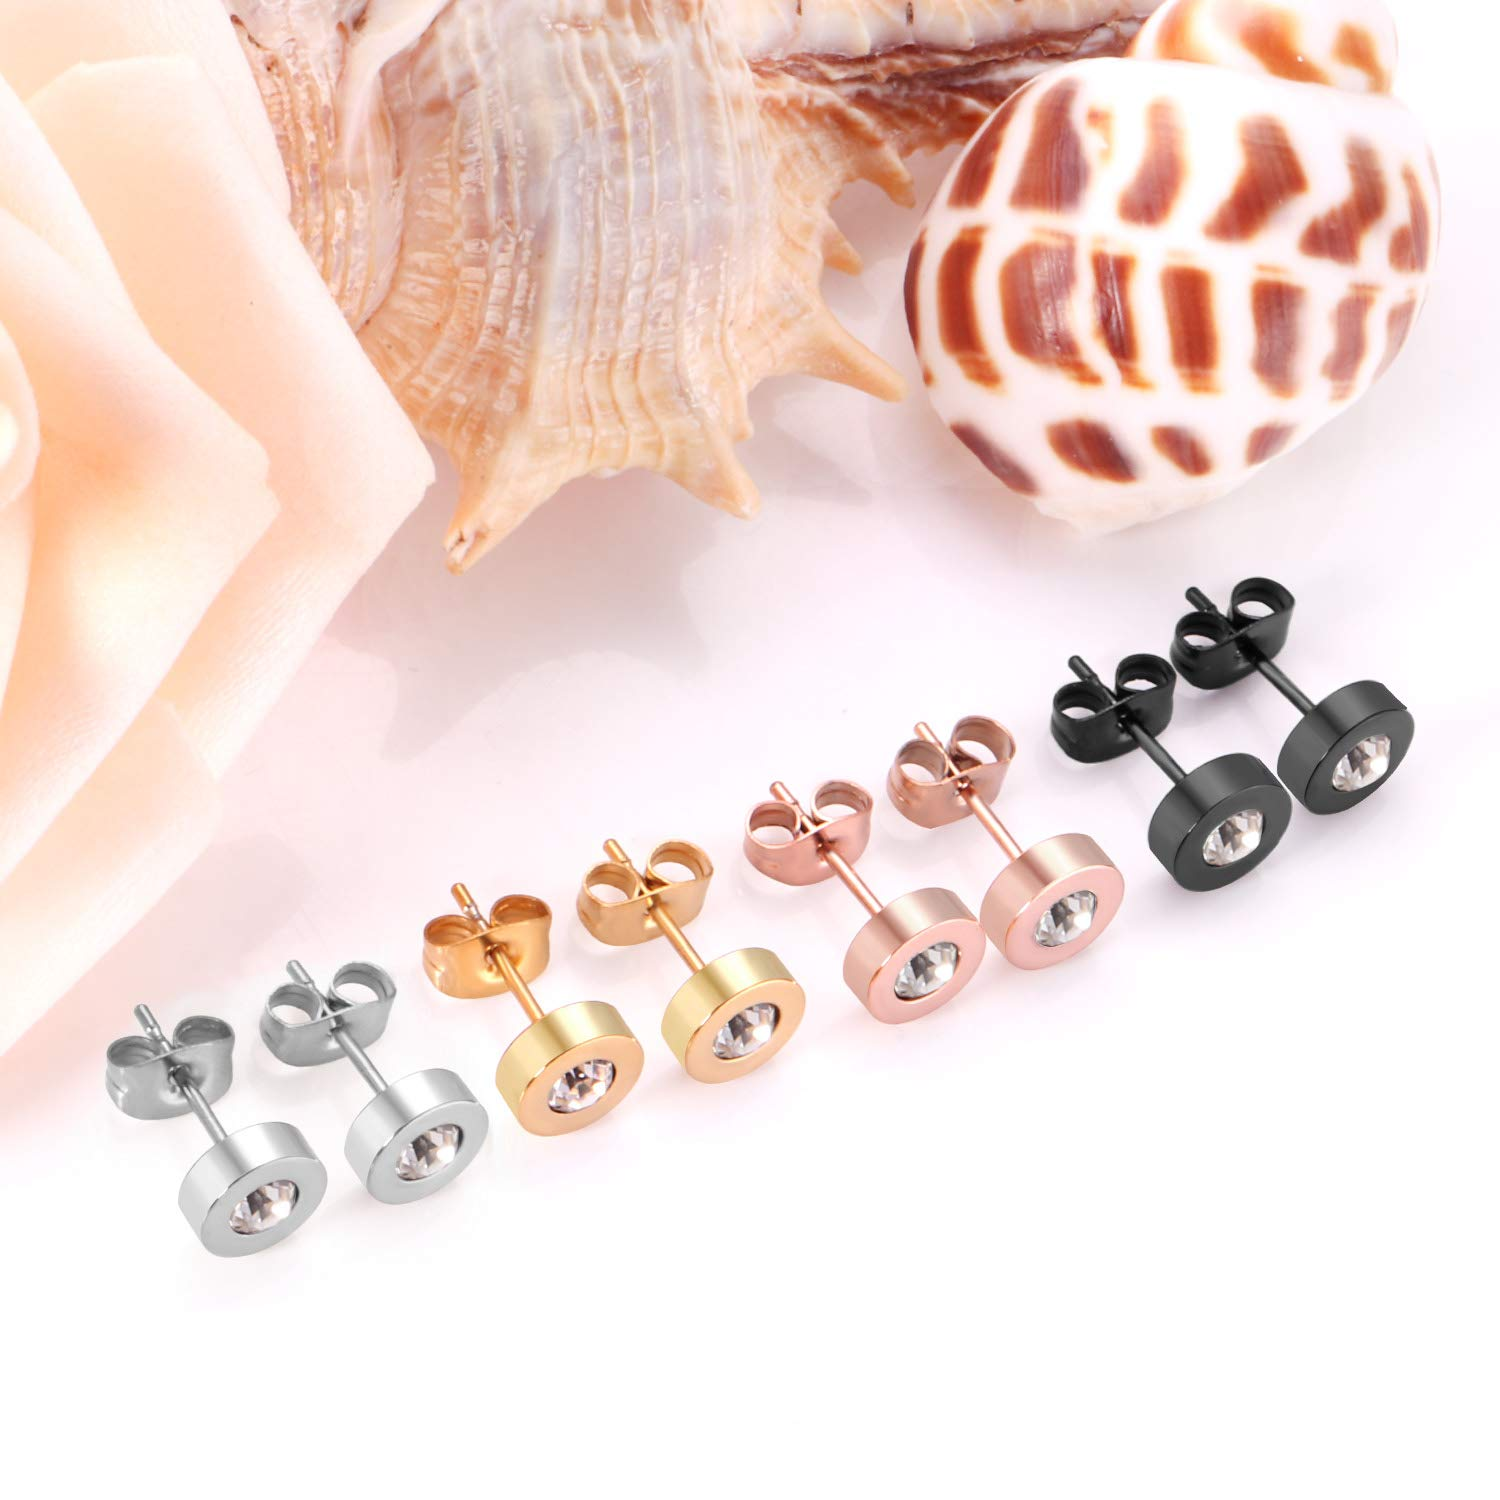 LUXUSTEEL 4 Colors 316L Stainless Steel Hypoallergenic CZ Stud Earrings for Women Teen Girls Silver,Gold,Rose Gold,Black